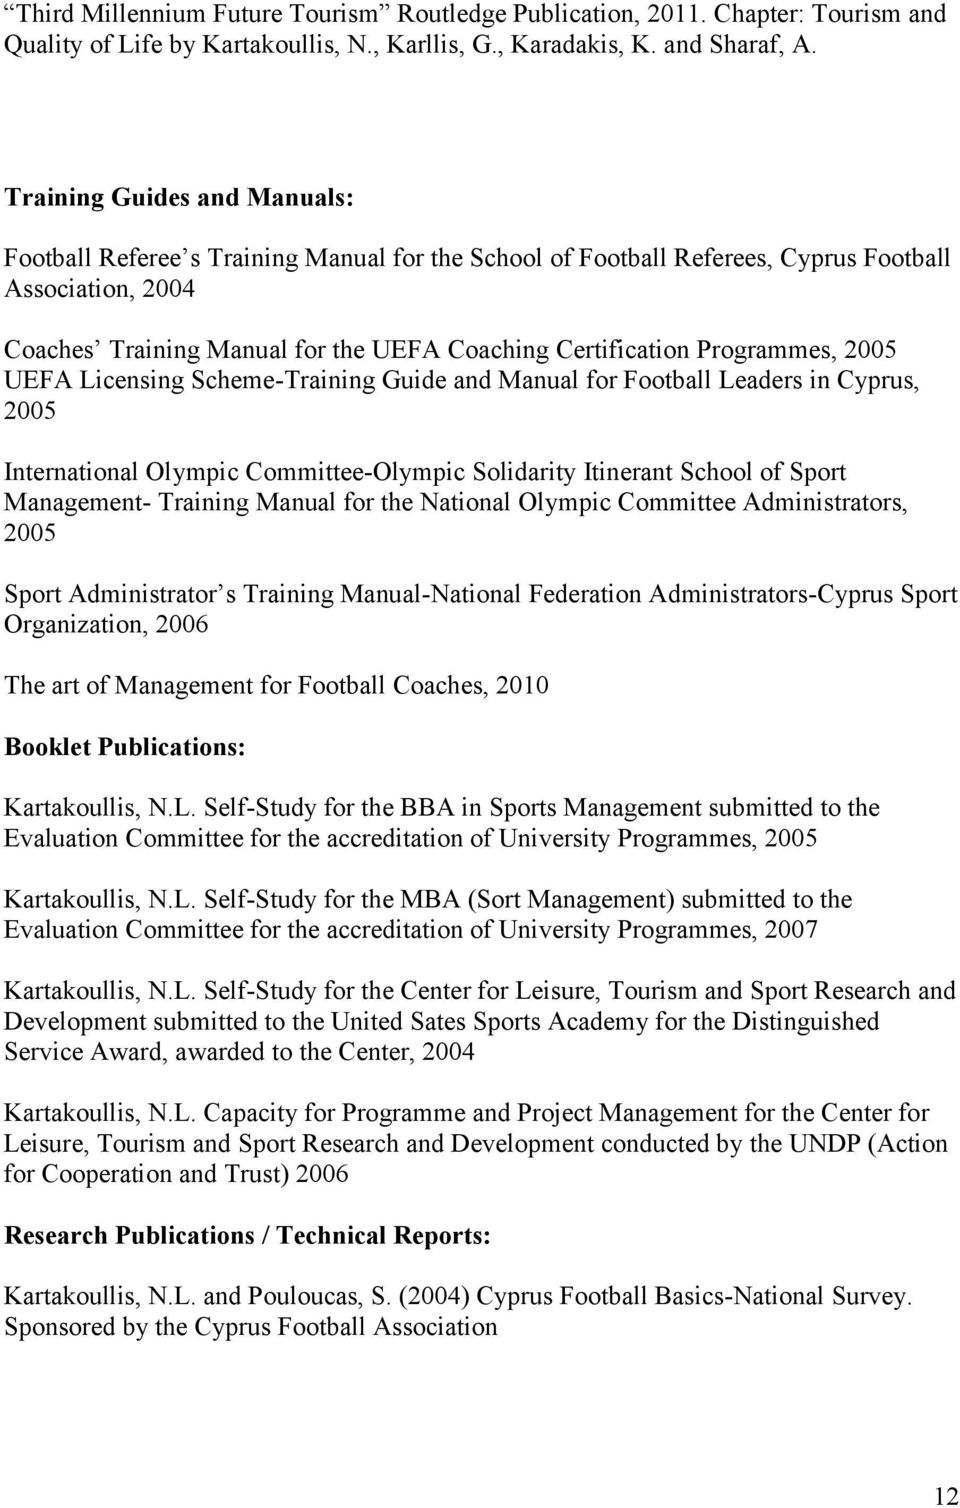 Programmes, 2005 UEFA Licensing Scheme-Training Guide and Manual for Football Leaders in Cyprus, 2005 International Olympic Committee-Olympic Solidarity Itinerant School of Sport Management- Training